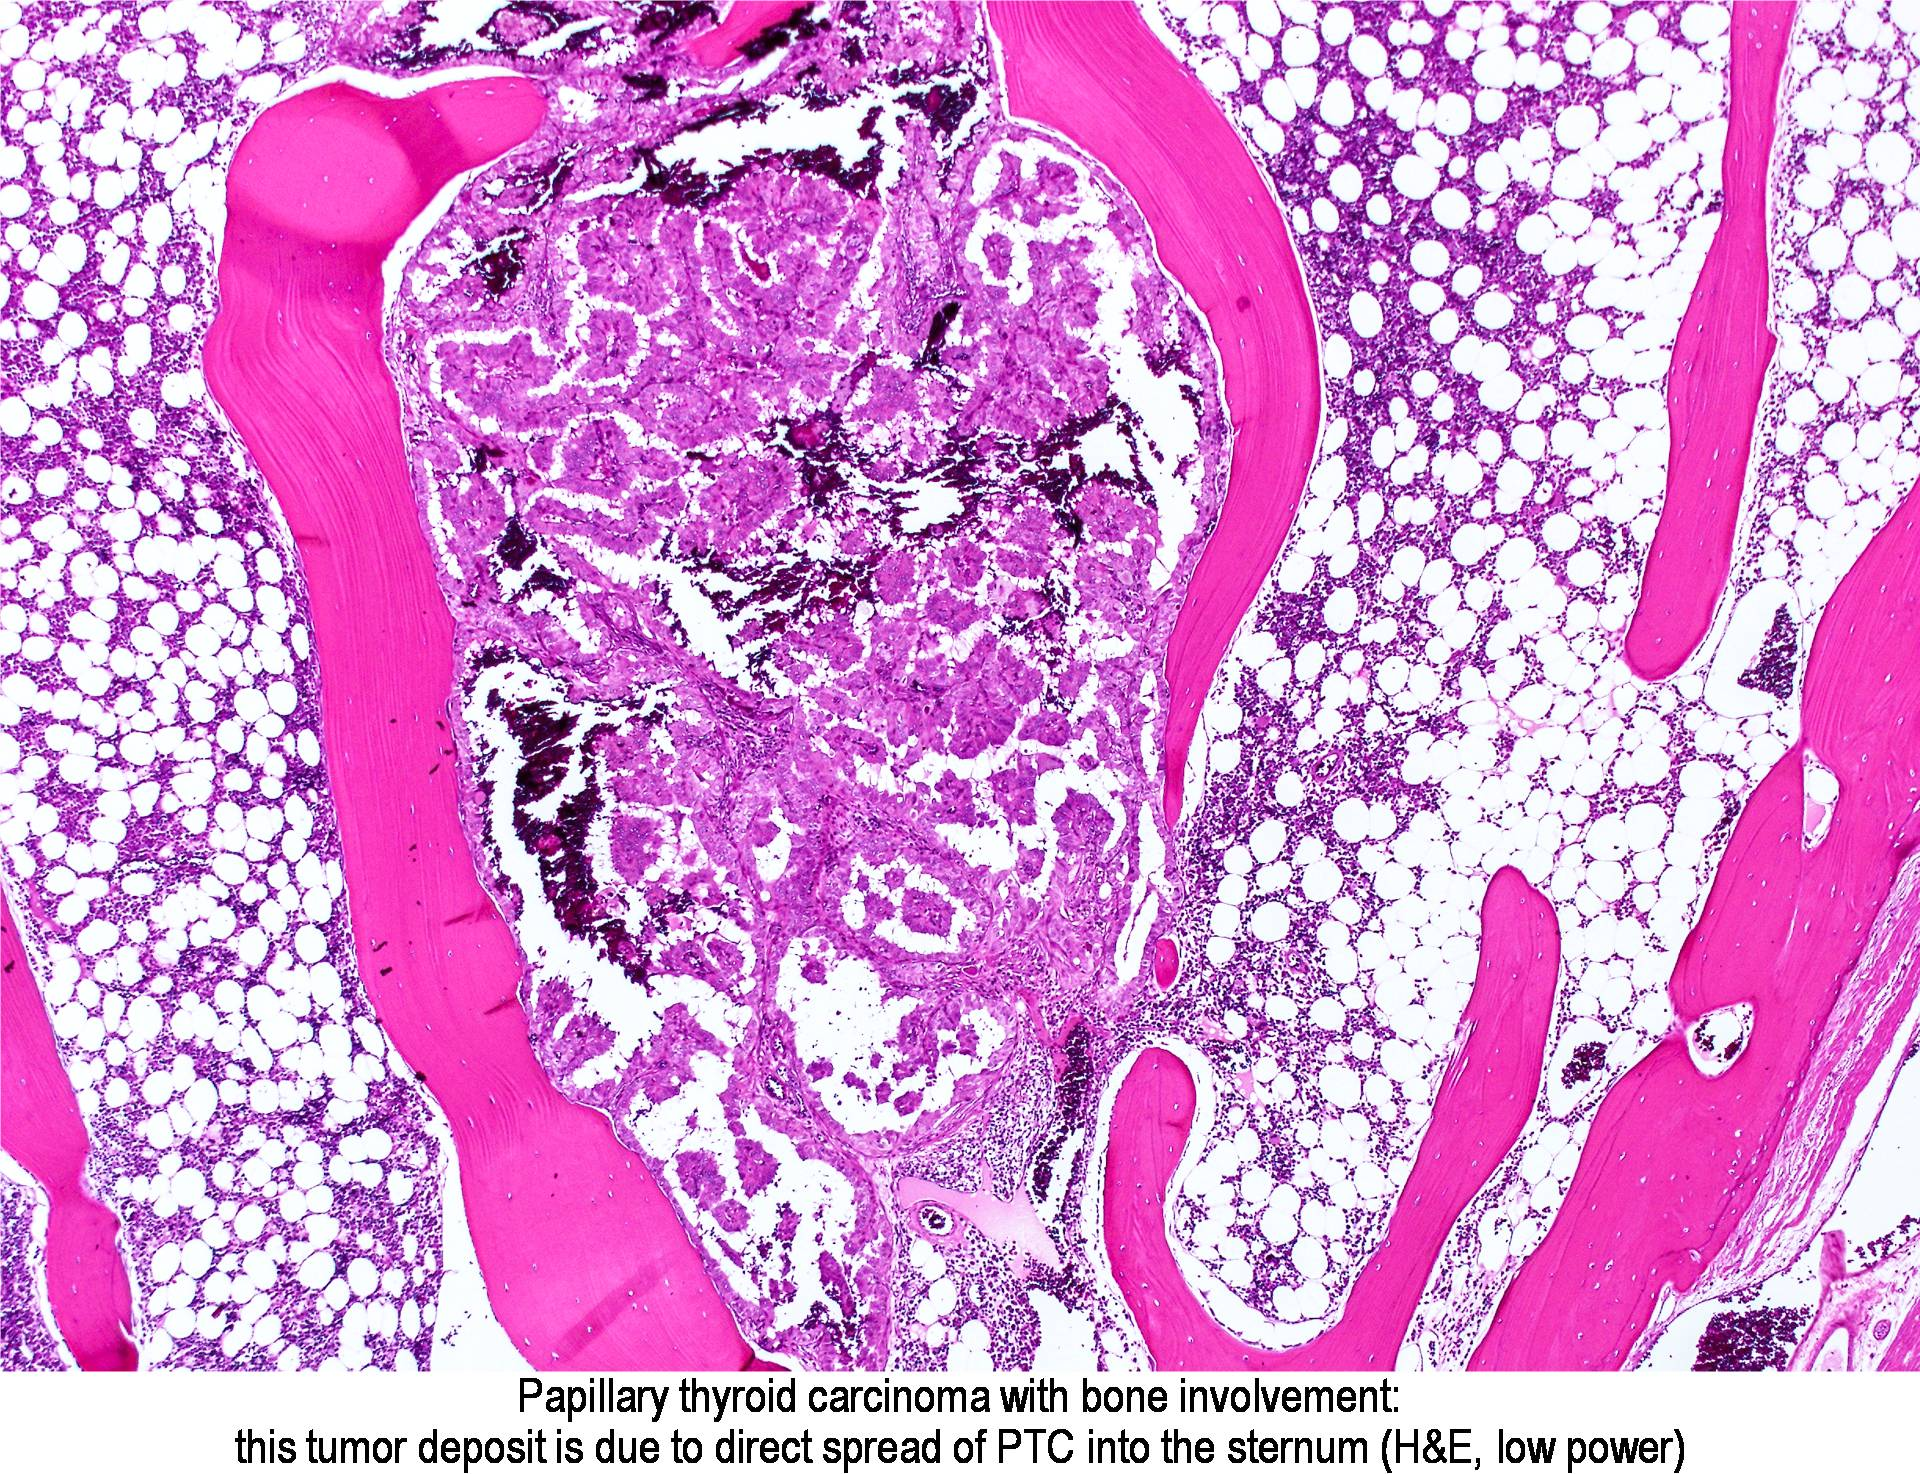 papillary thyroid cancer in bones